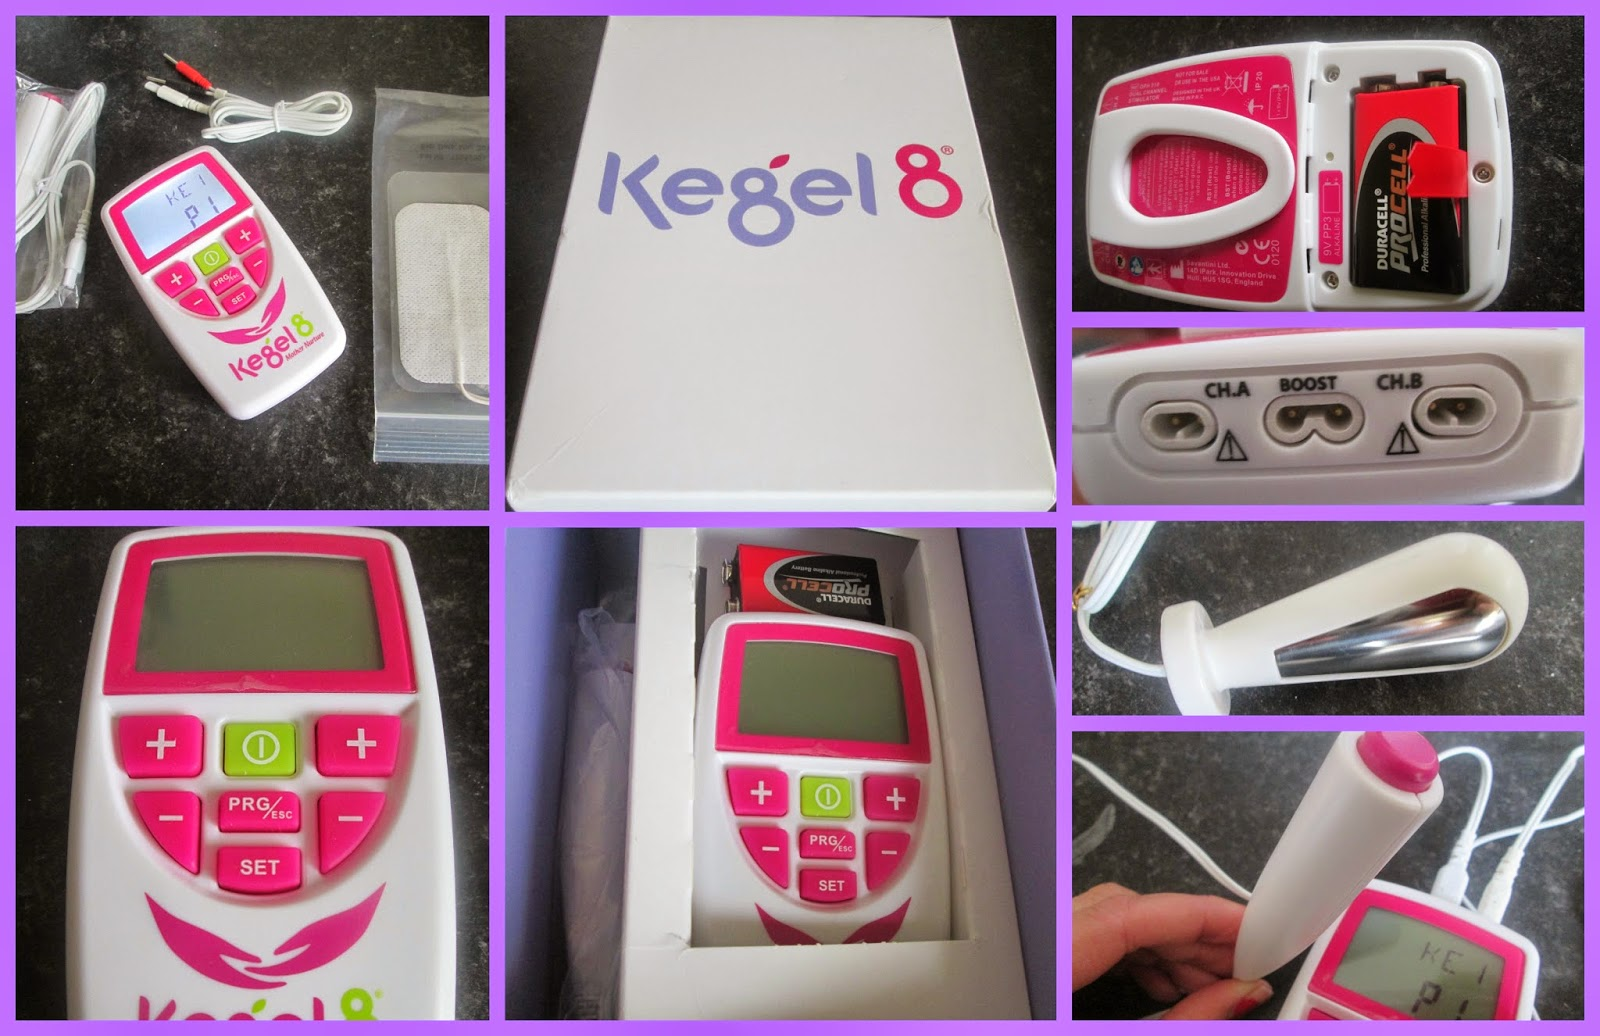 Tens and pelvic floor toner in one by kegal8